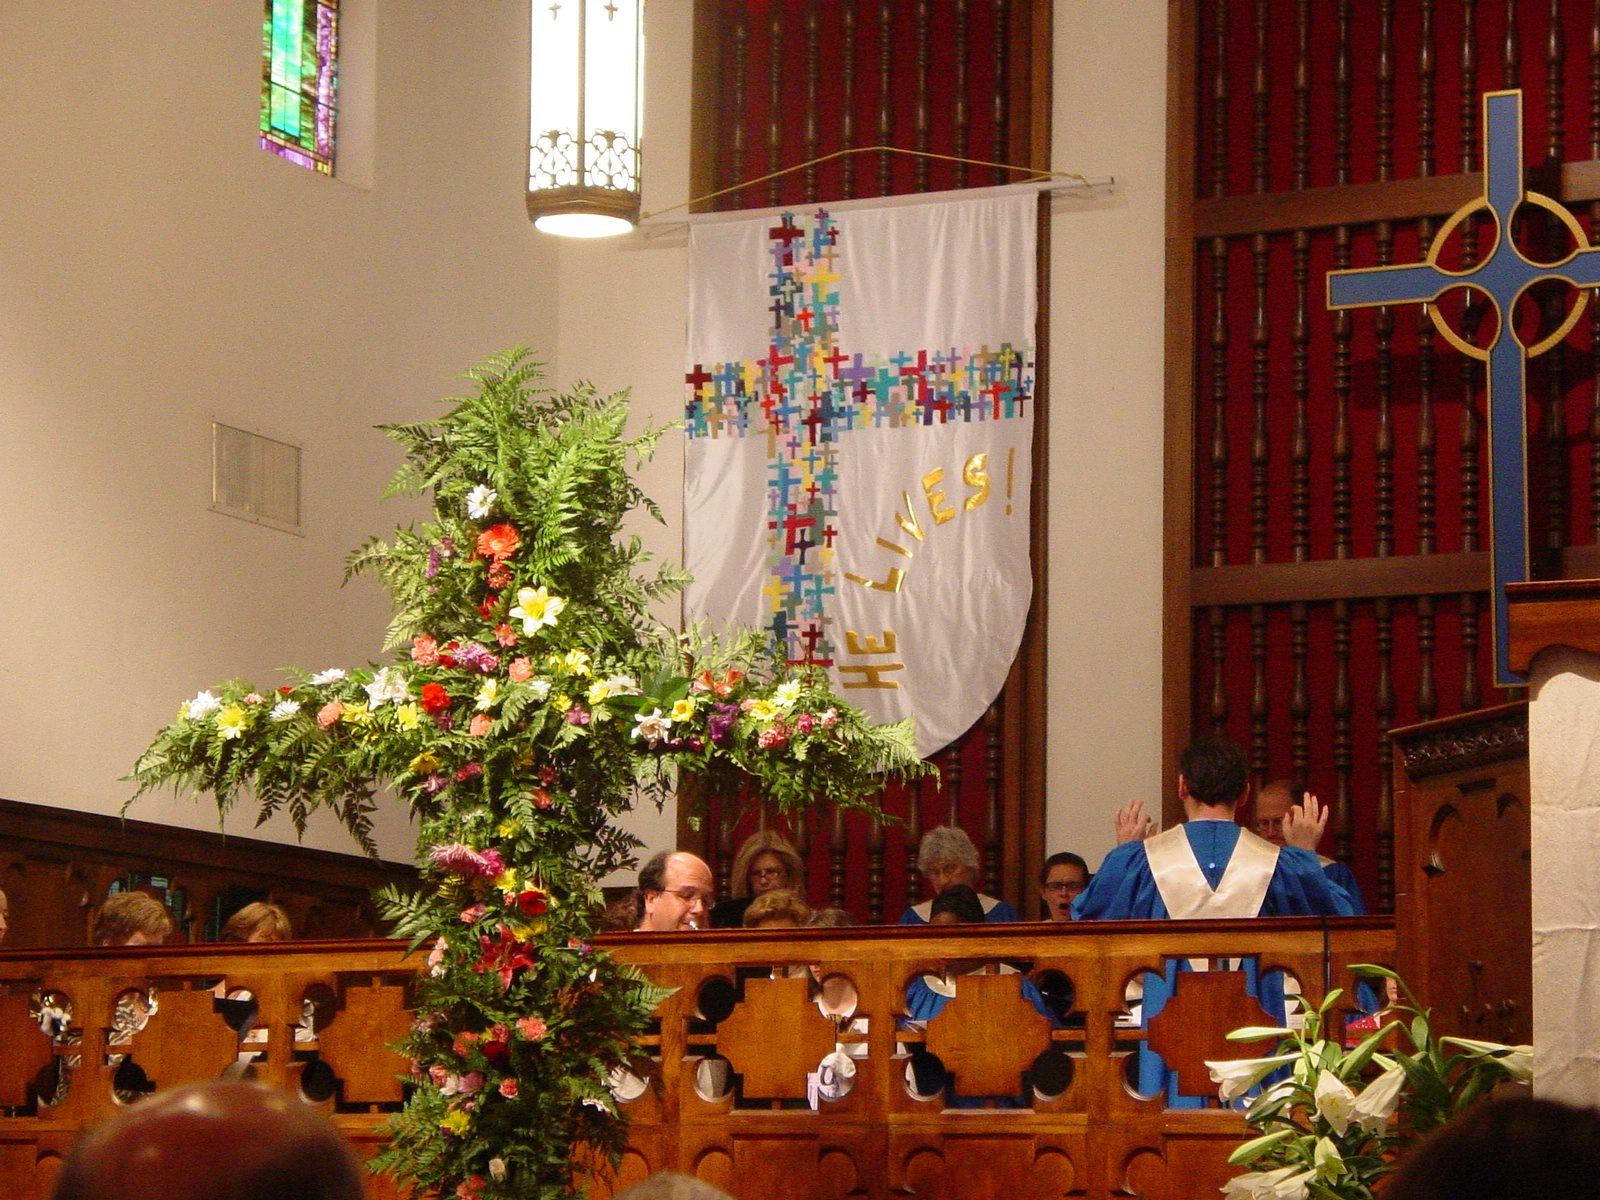 Flower Cross on Easter Sunday